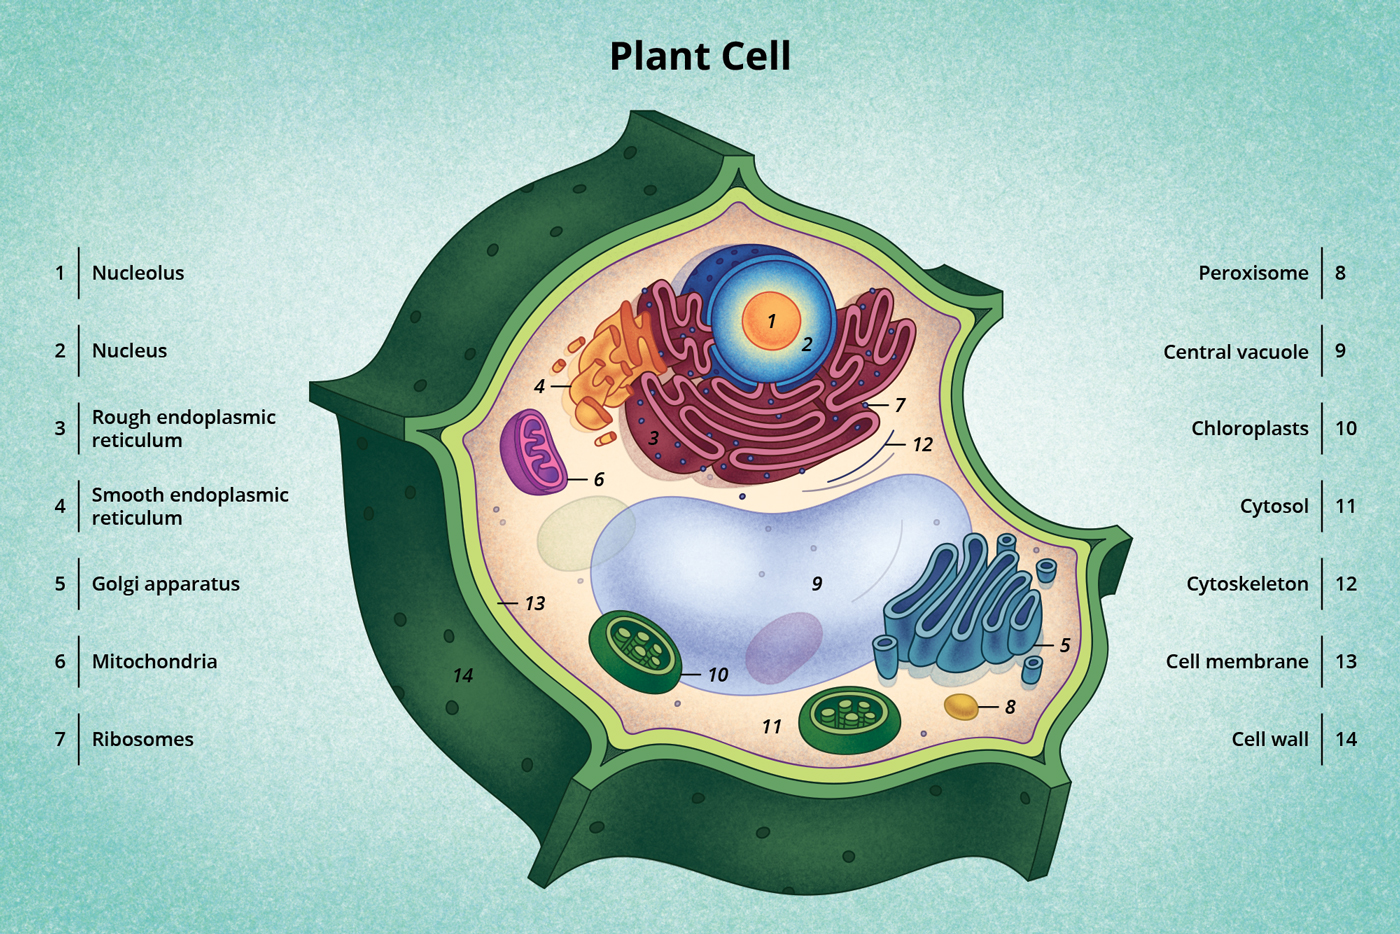 hight resolution of figure 6 a diagram of a typical plant cell